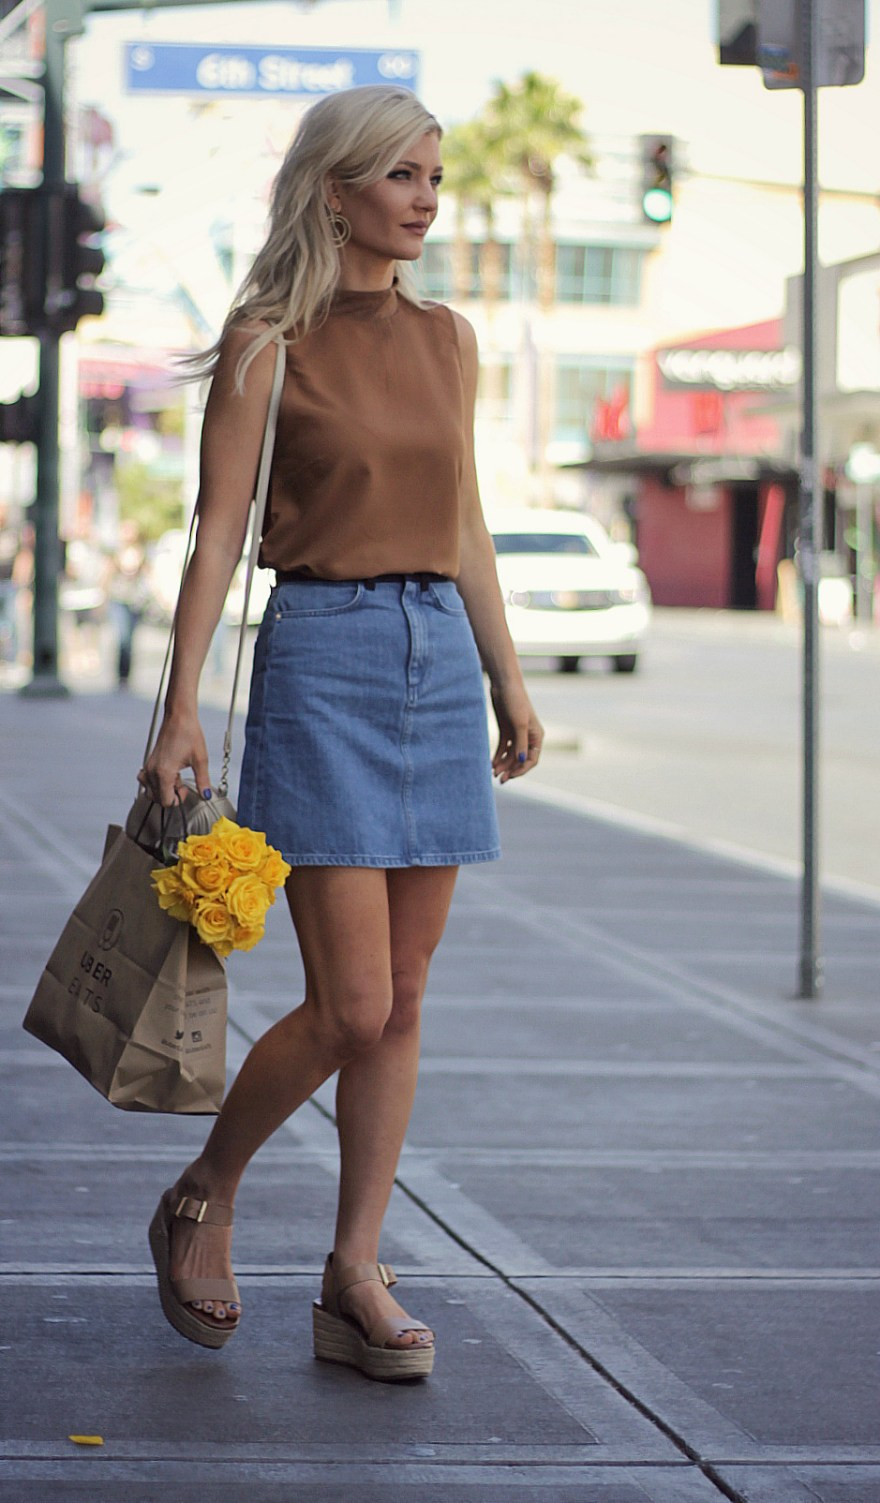 weekend wear, casual, outfit, style, fashion, street style, fashion blogger, french connection, flatforms, denim skirt, the nomis niche, lindsey simon